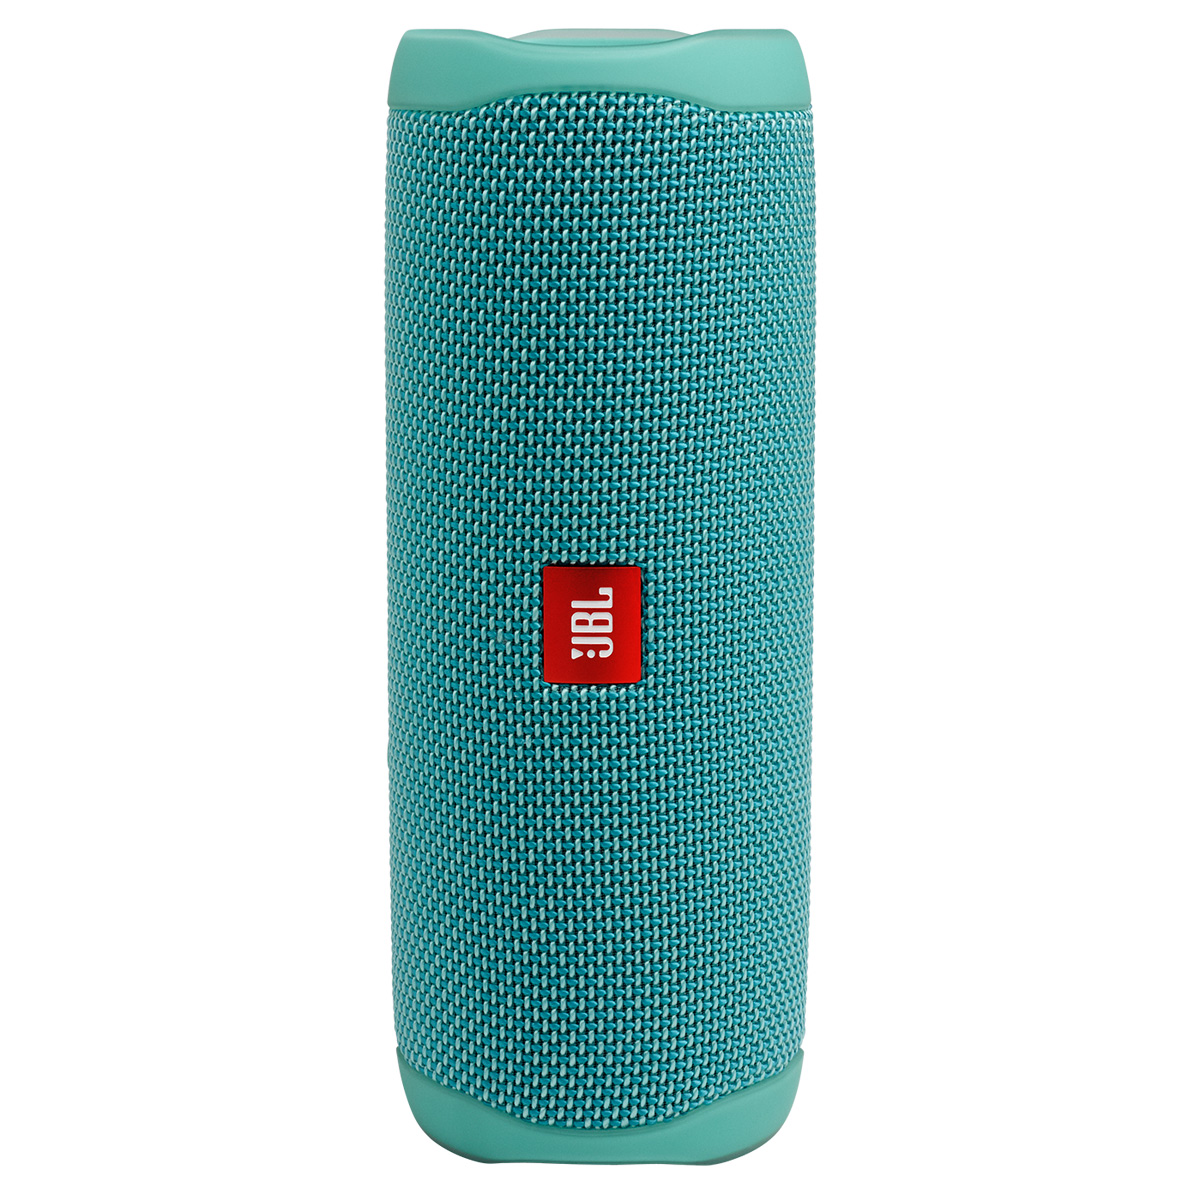 JBL-Flip-5-Portable-Waterproof-Bluetooth-Speaker thumbnail 38